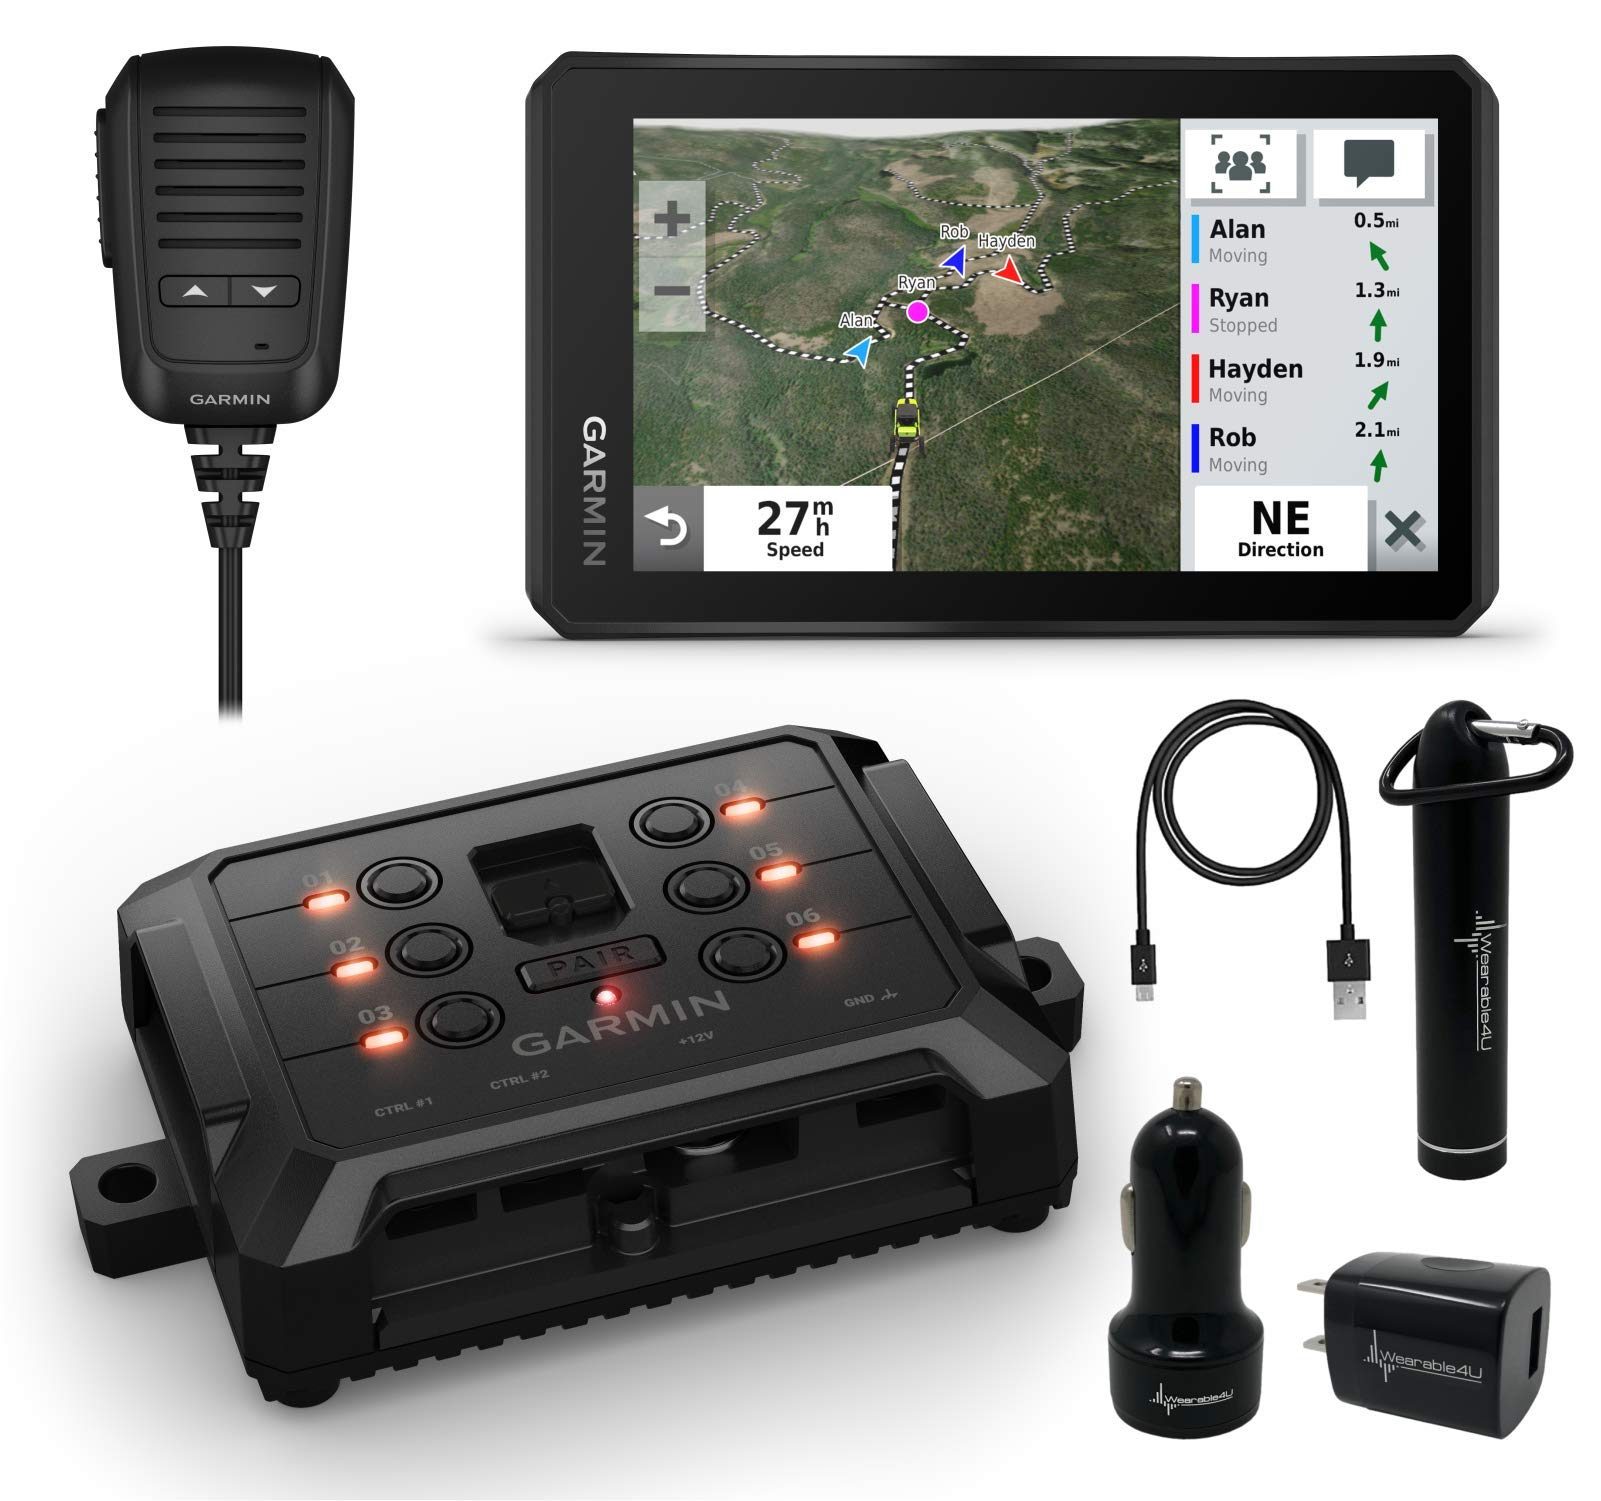 Garmin Tread Powersport Offroad Navigator with Group Ride Radio with Garmin PowerSwitch Digital Switch Box and Wearable4U Power Pack Bundle